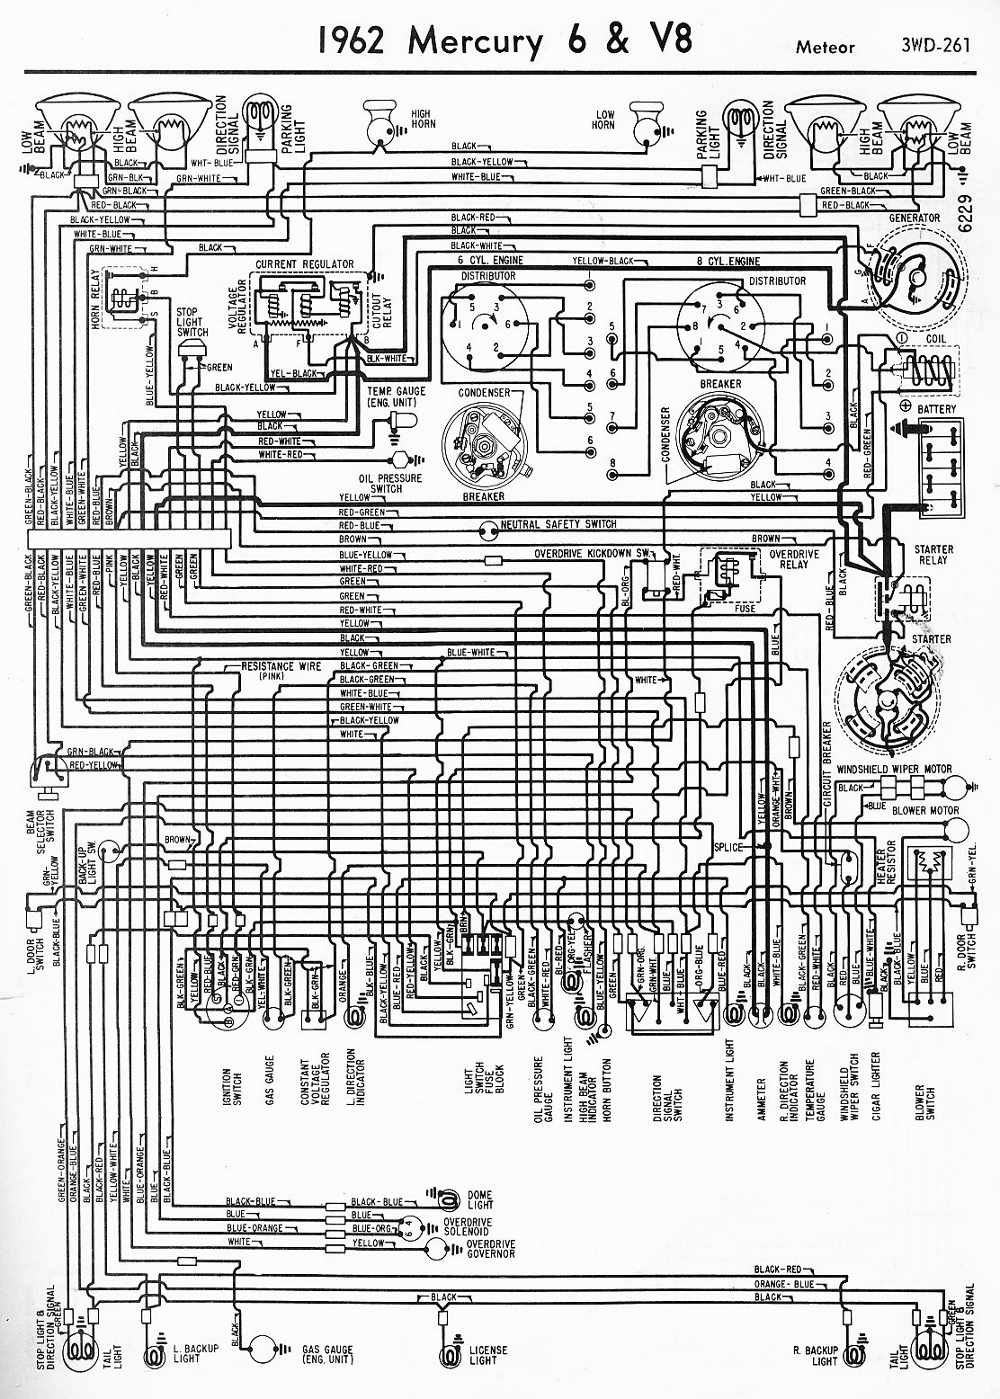 small resolution of 1969 mercury cyclone wiring diagram wiring diagram1969 mercury cyclone wiring diagram best part of wiring diagram1971